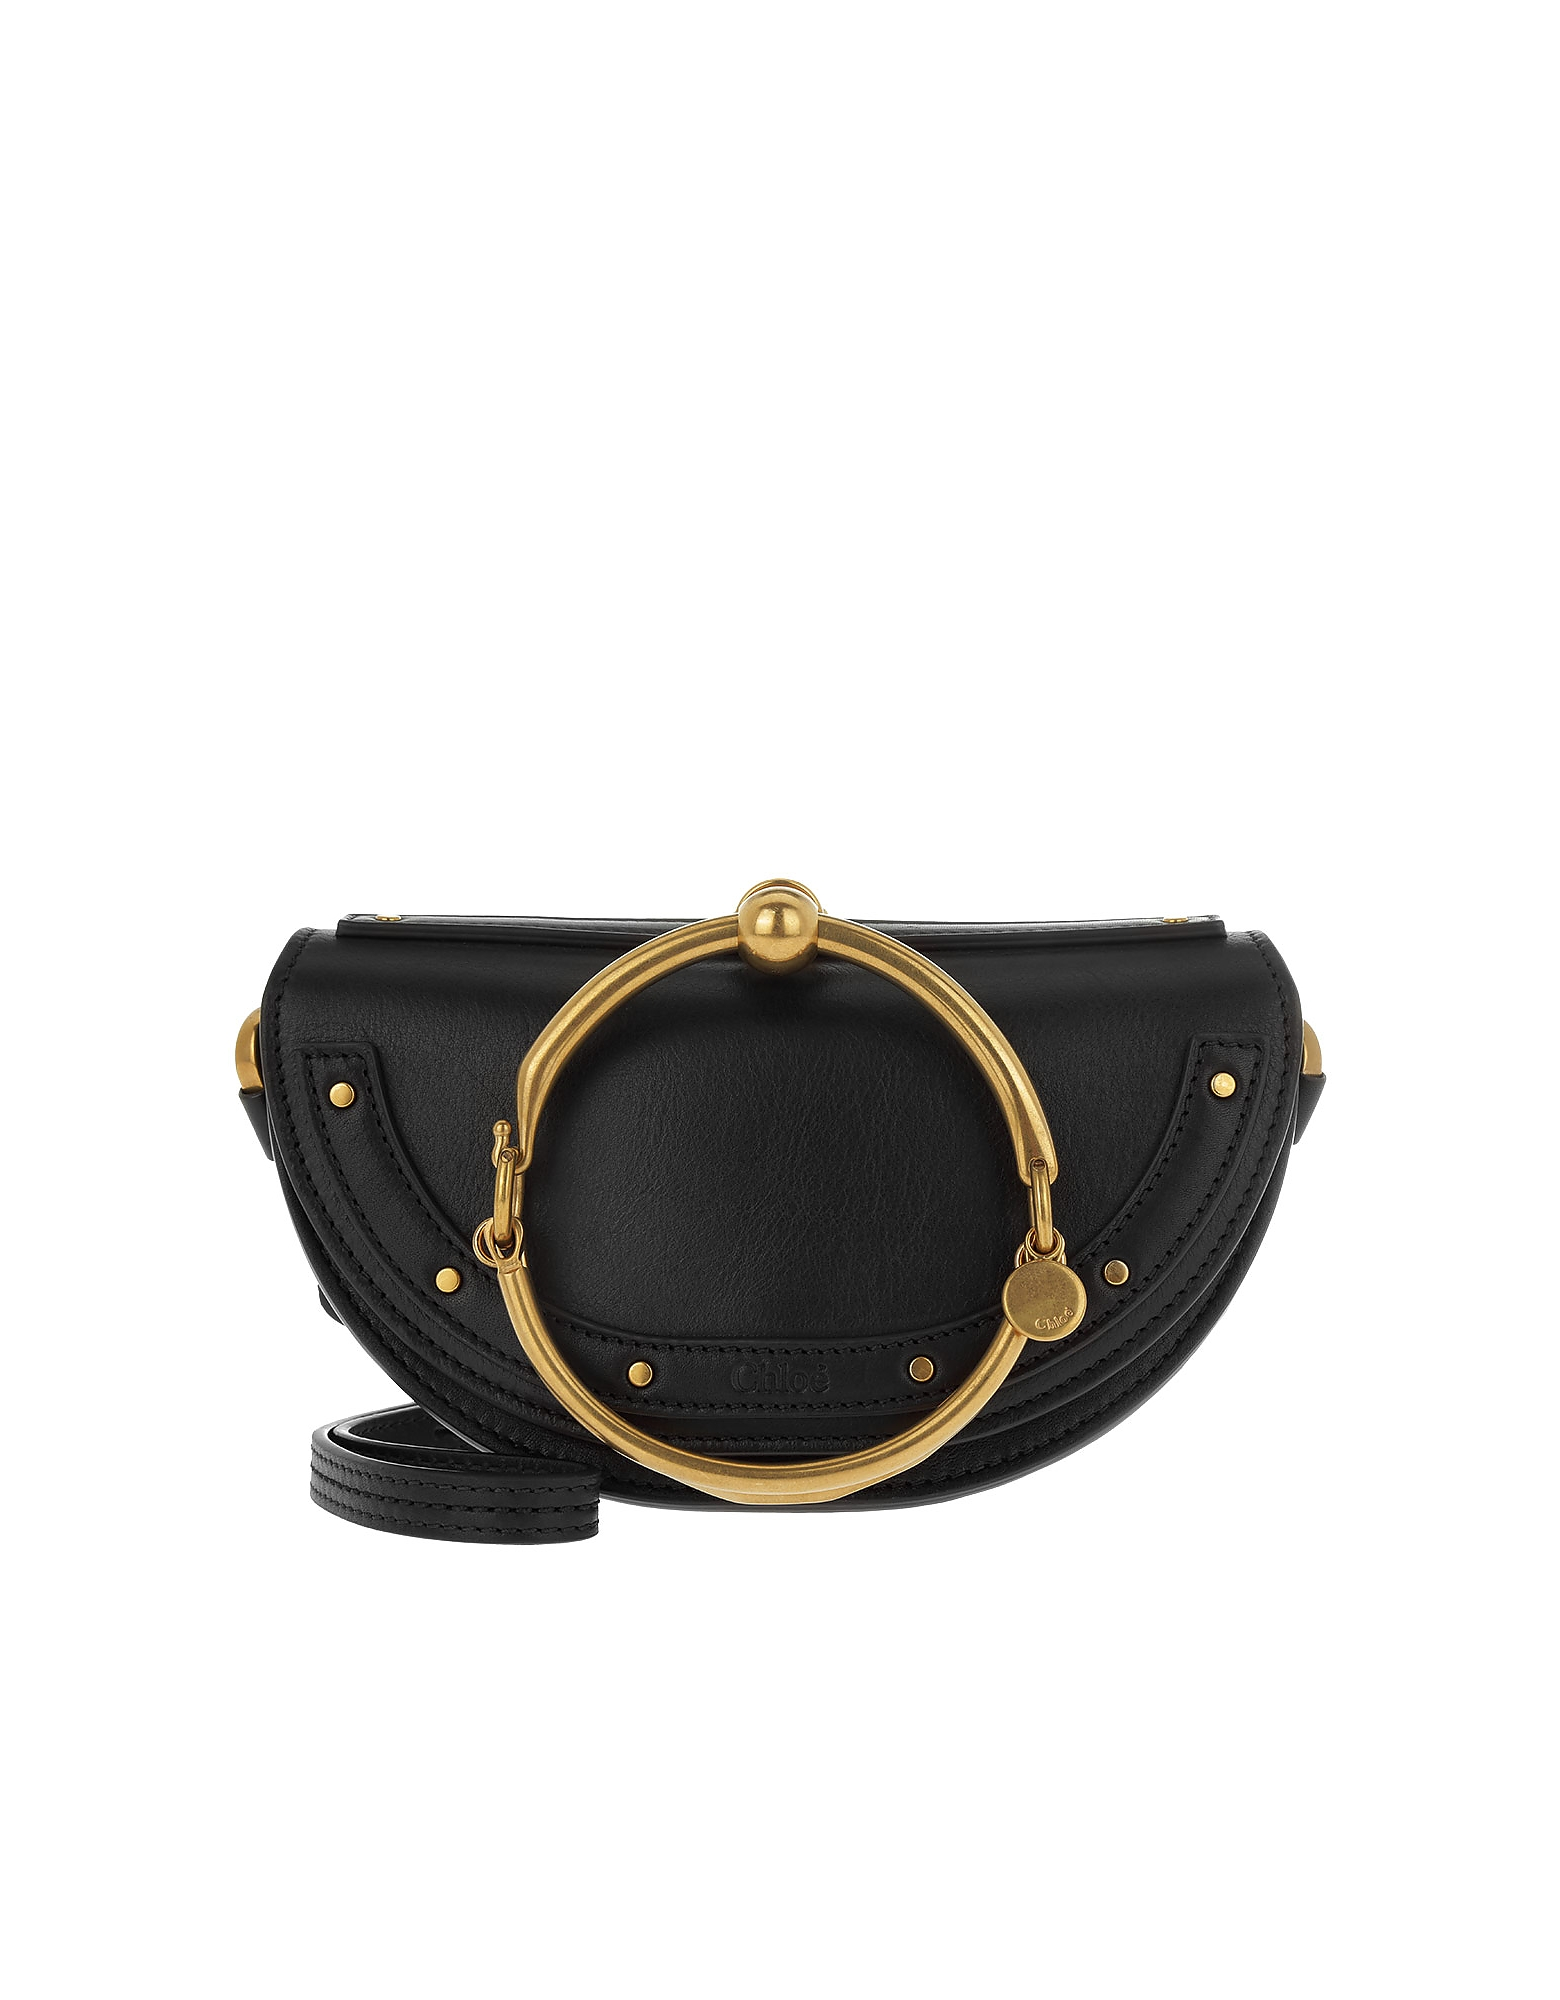 Chloe Handbags, Nile Pochette Black